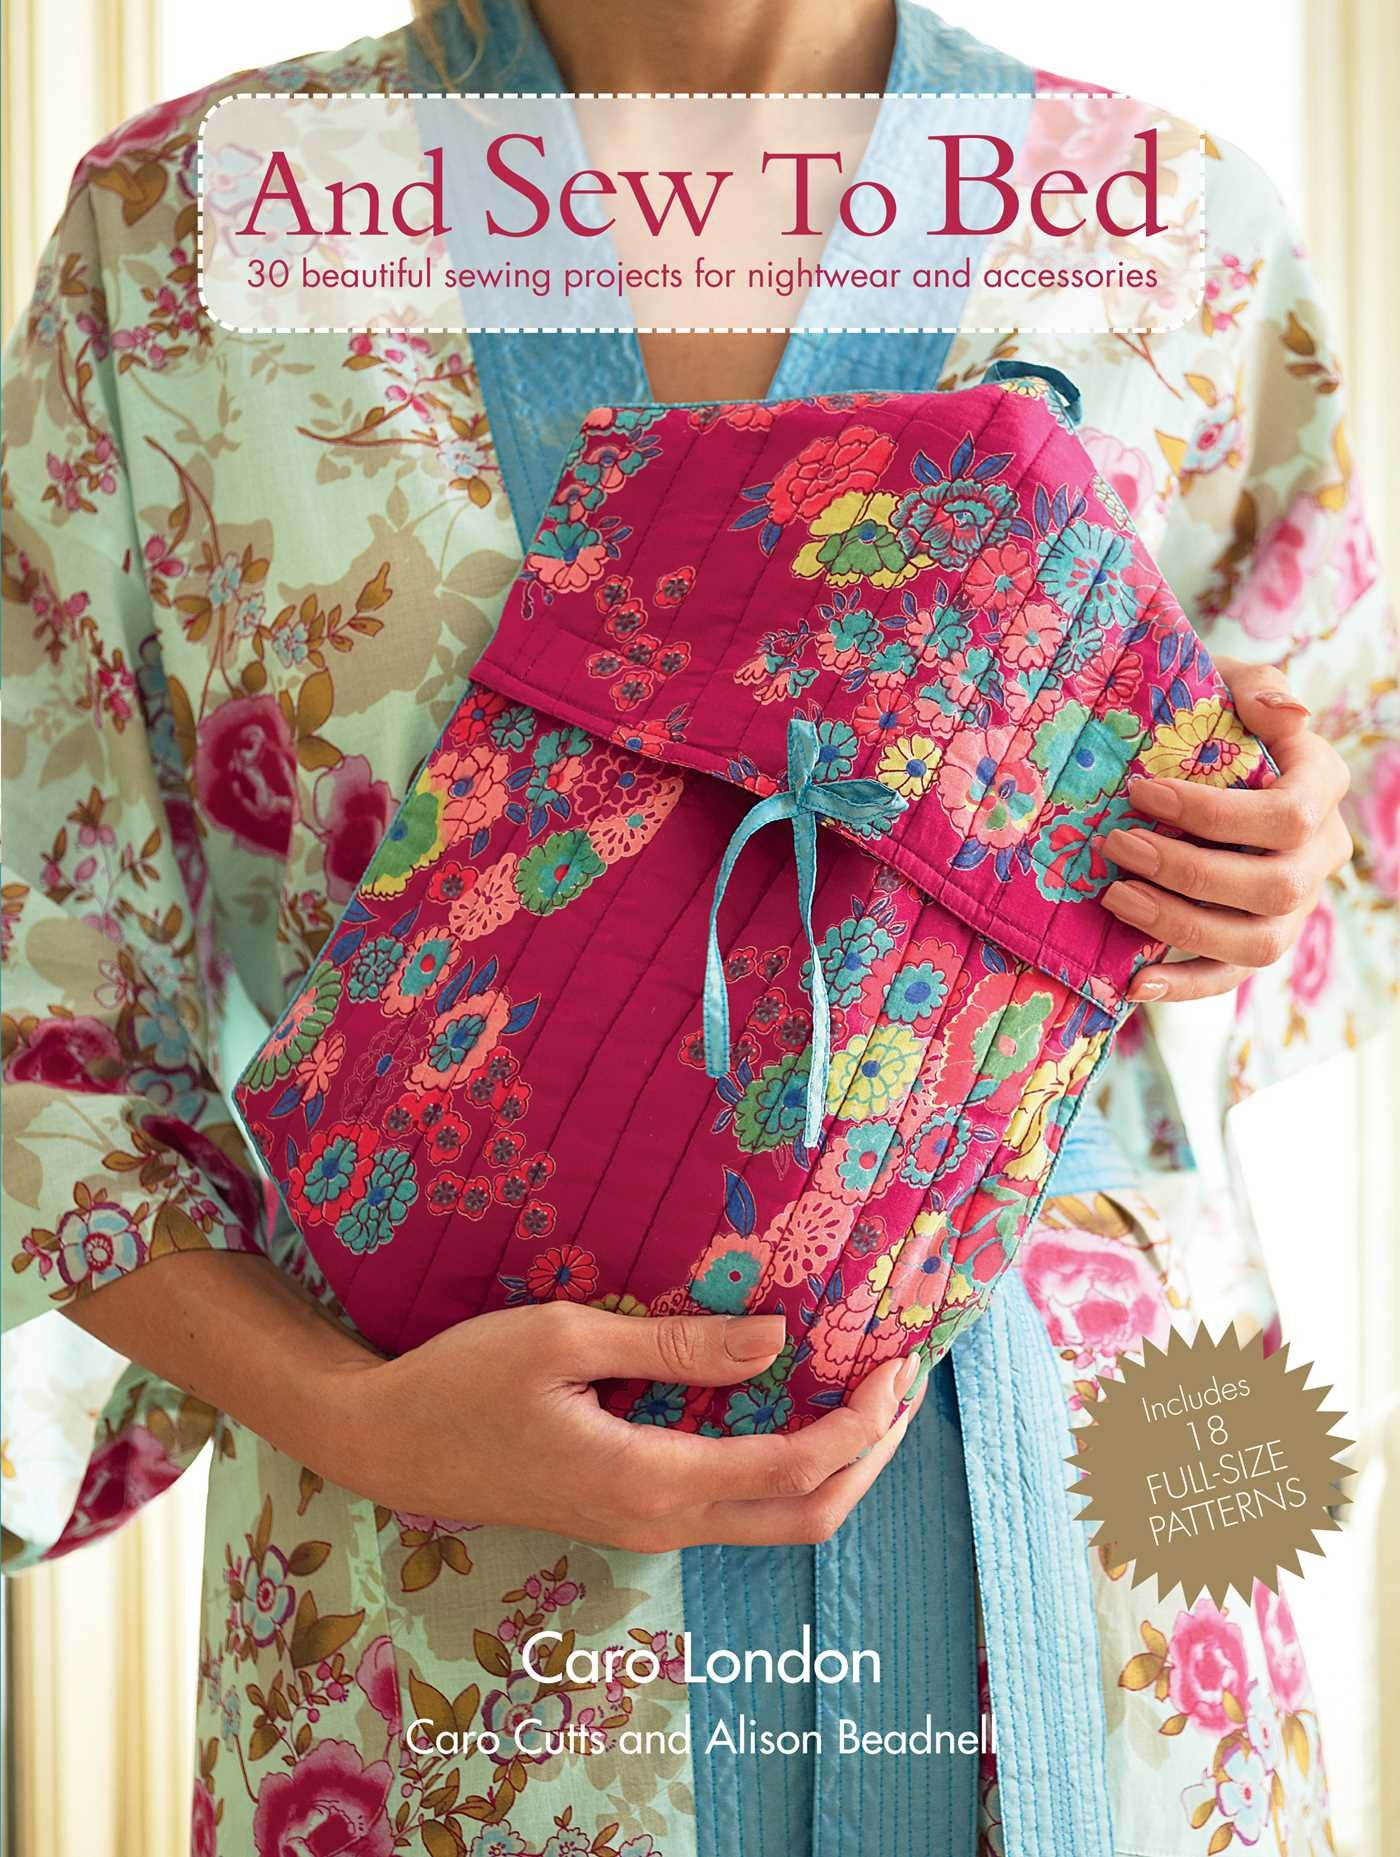 And Sew to Bed: 30 Beautiful Sewing Projects for Hightwear and Accessories